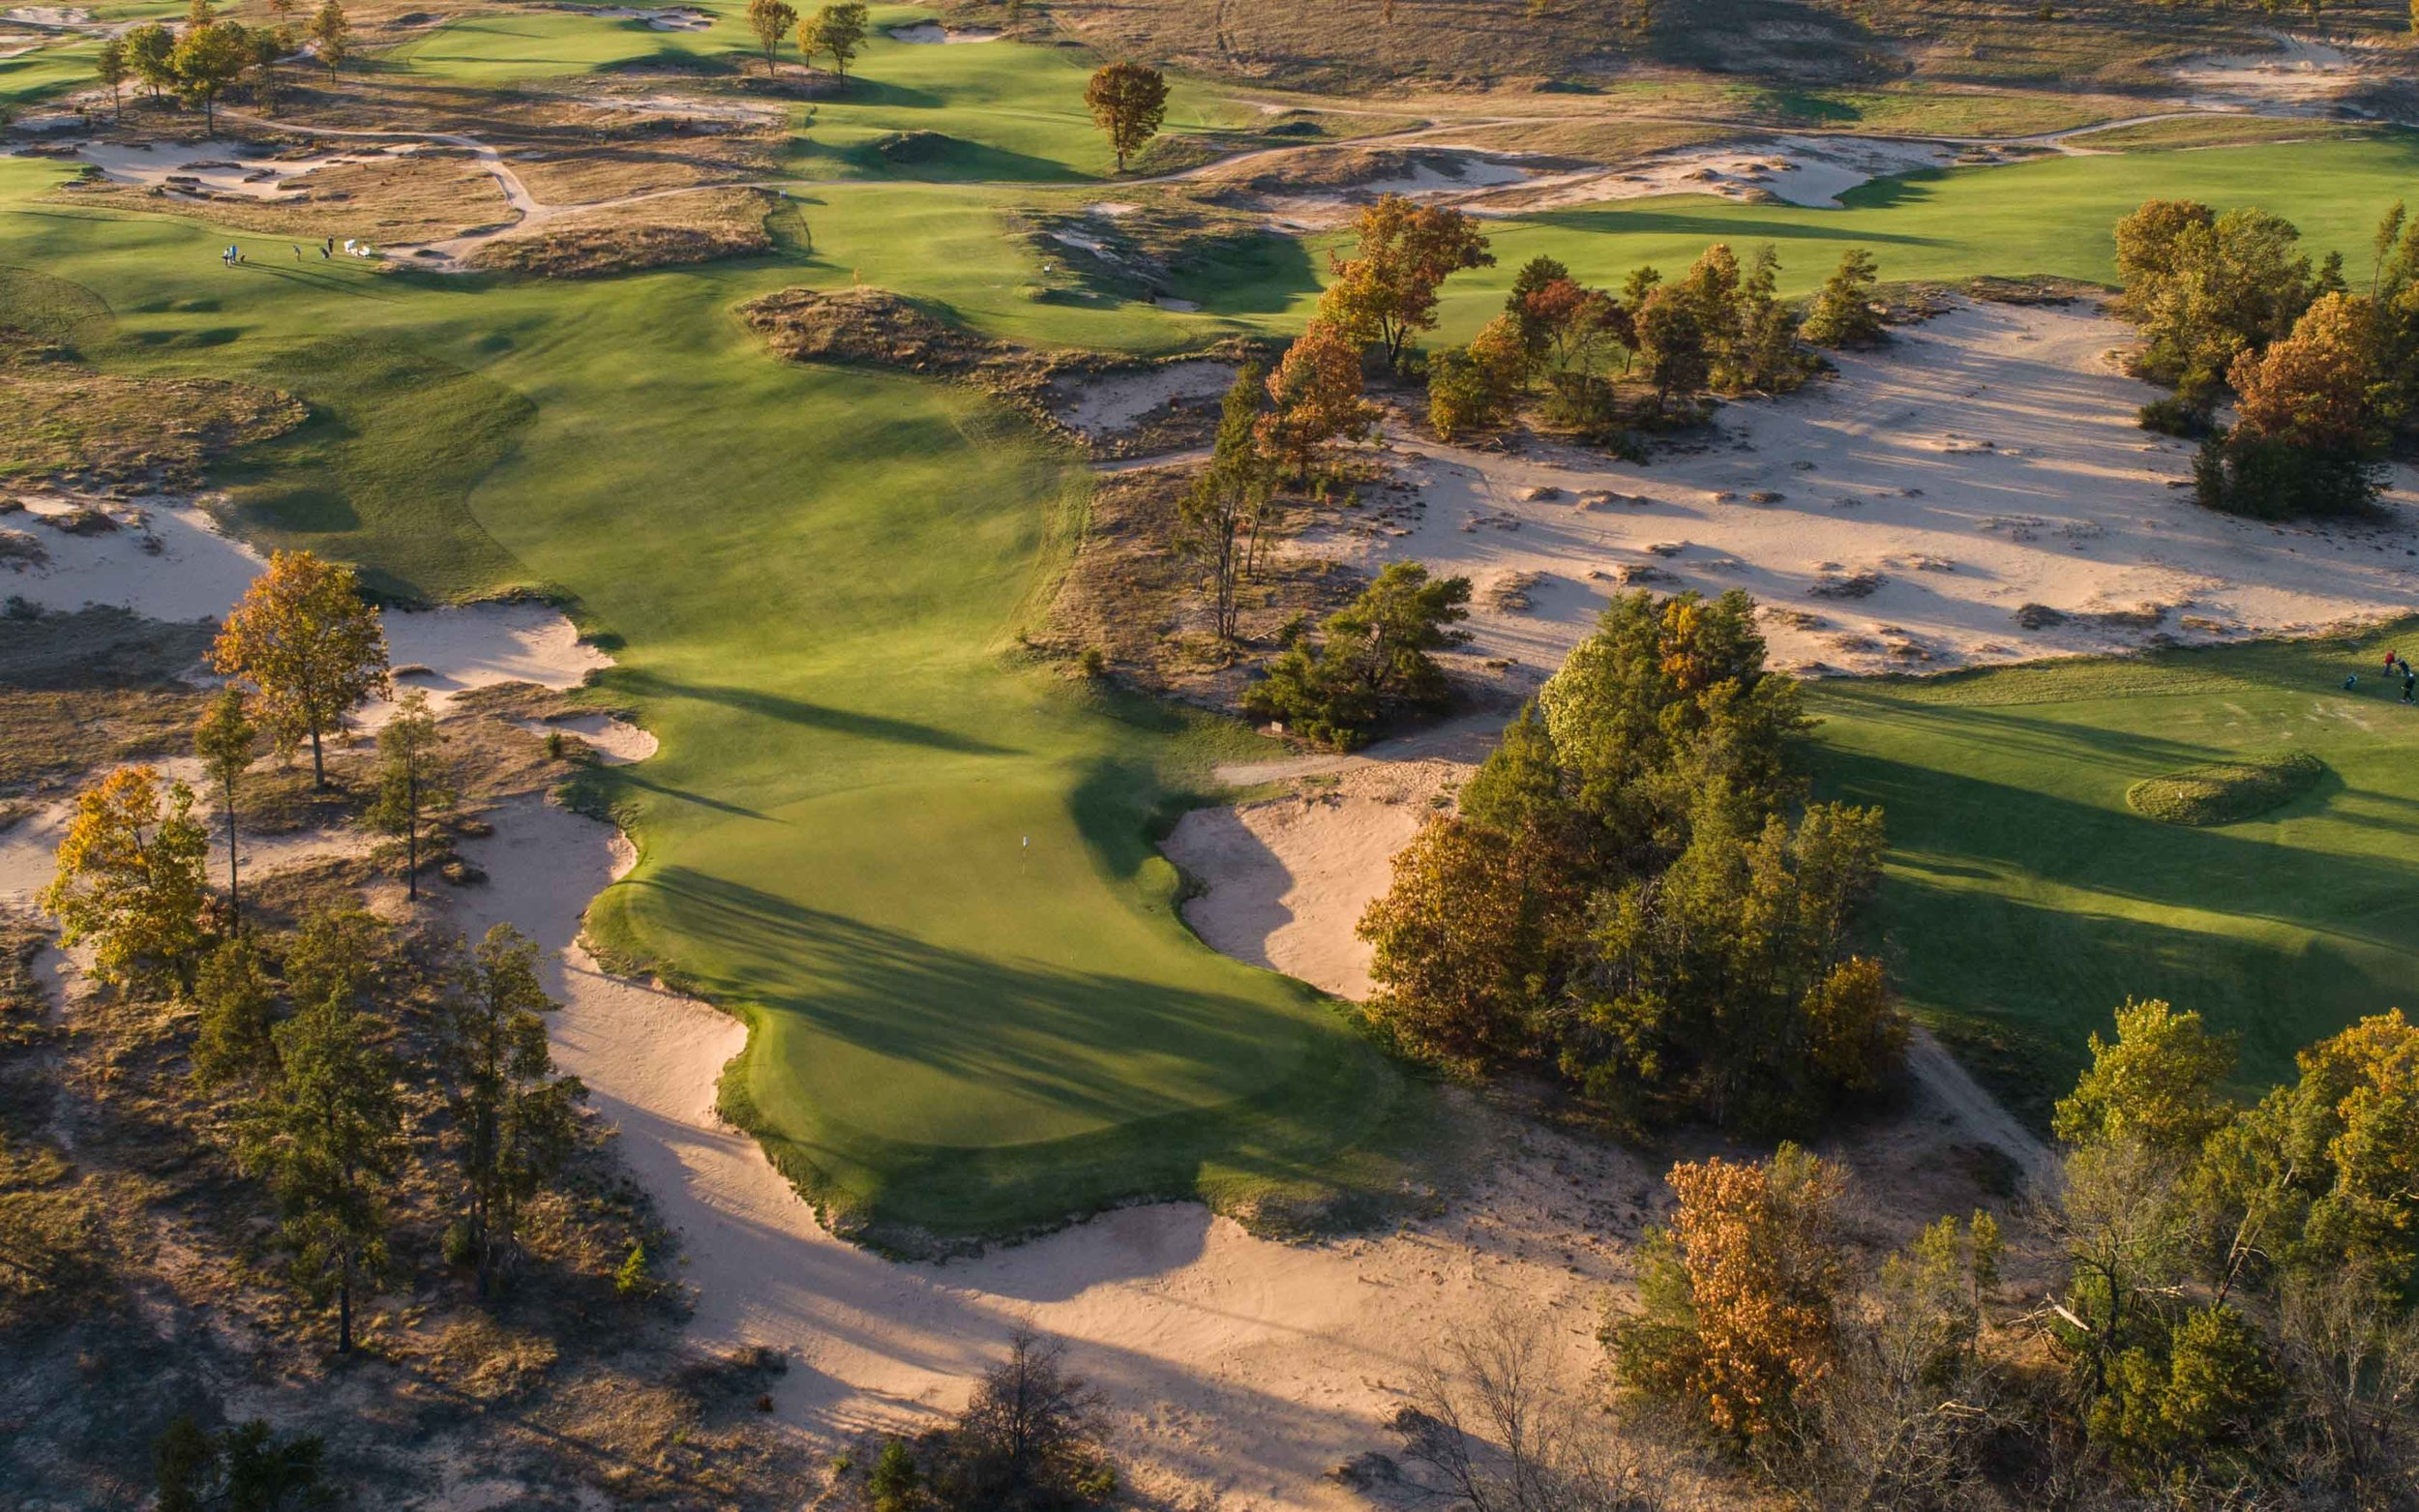 Coore and Crenshaw's Sand Valley